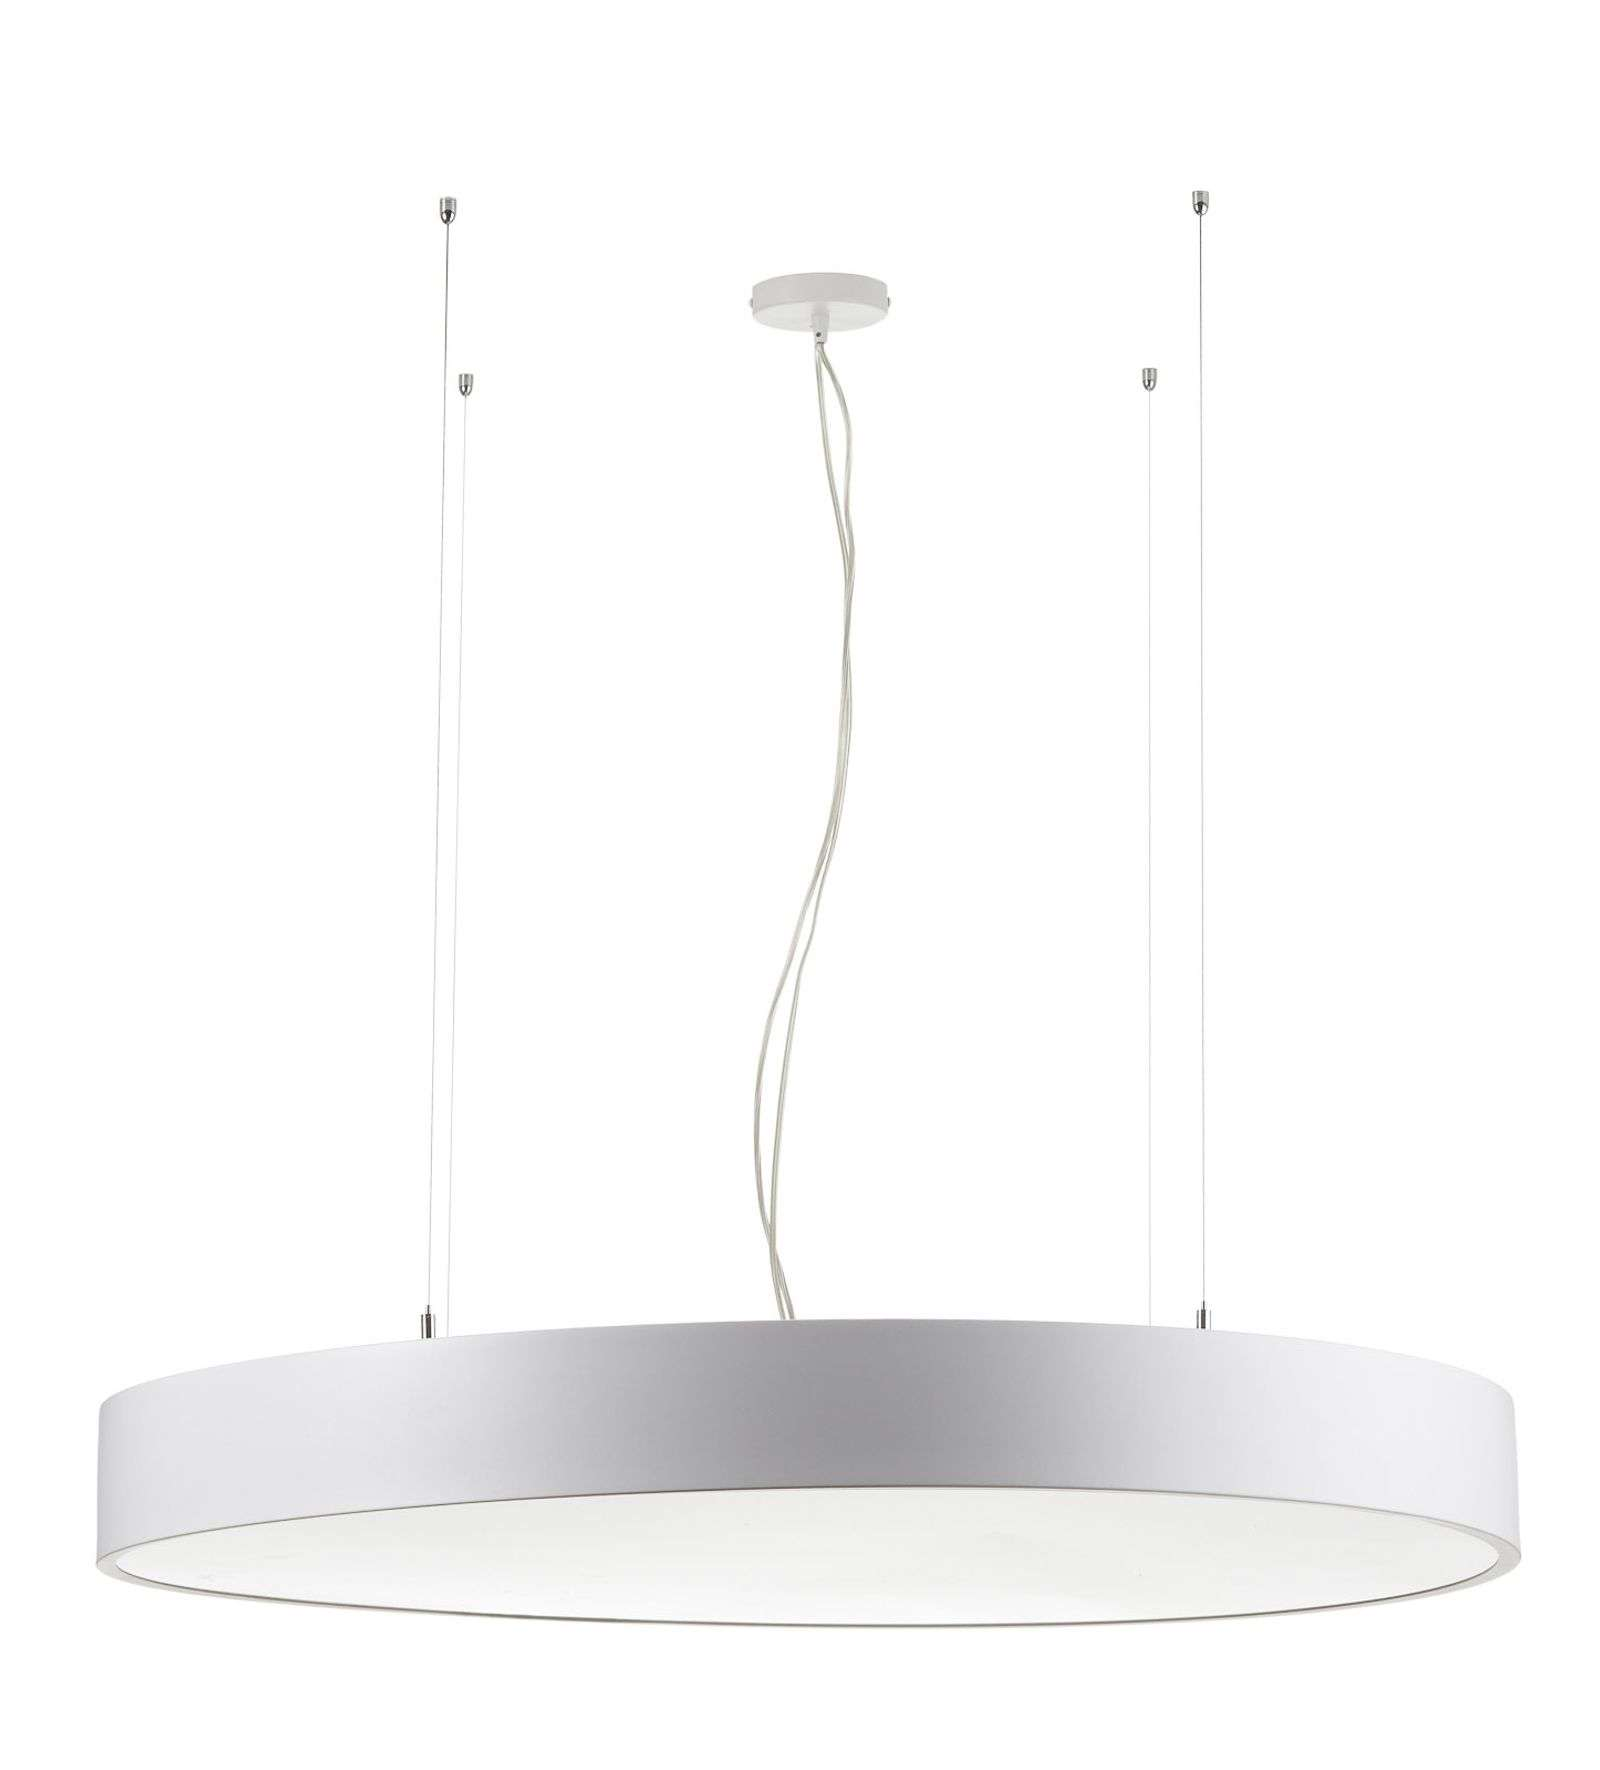 Grande suspension LED Isia, dimmable, 100 cm Ø